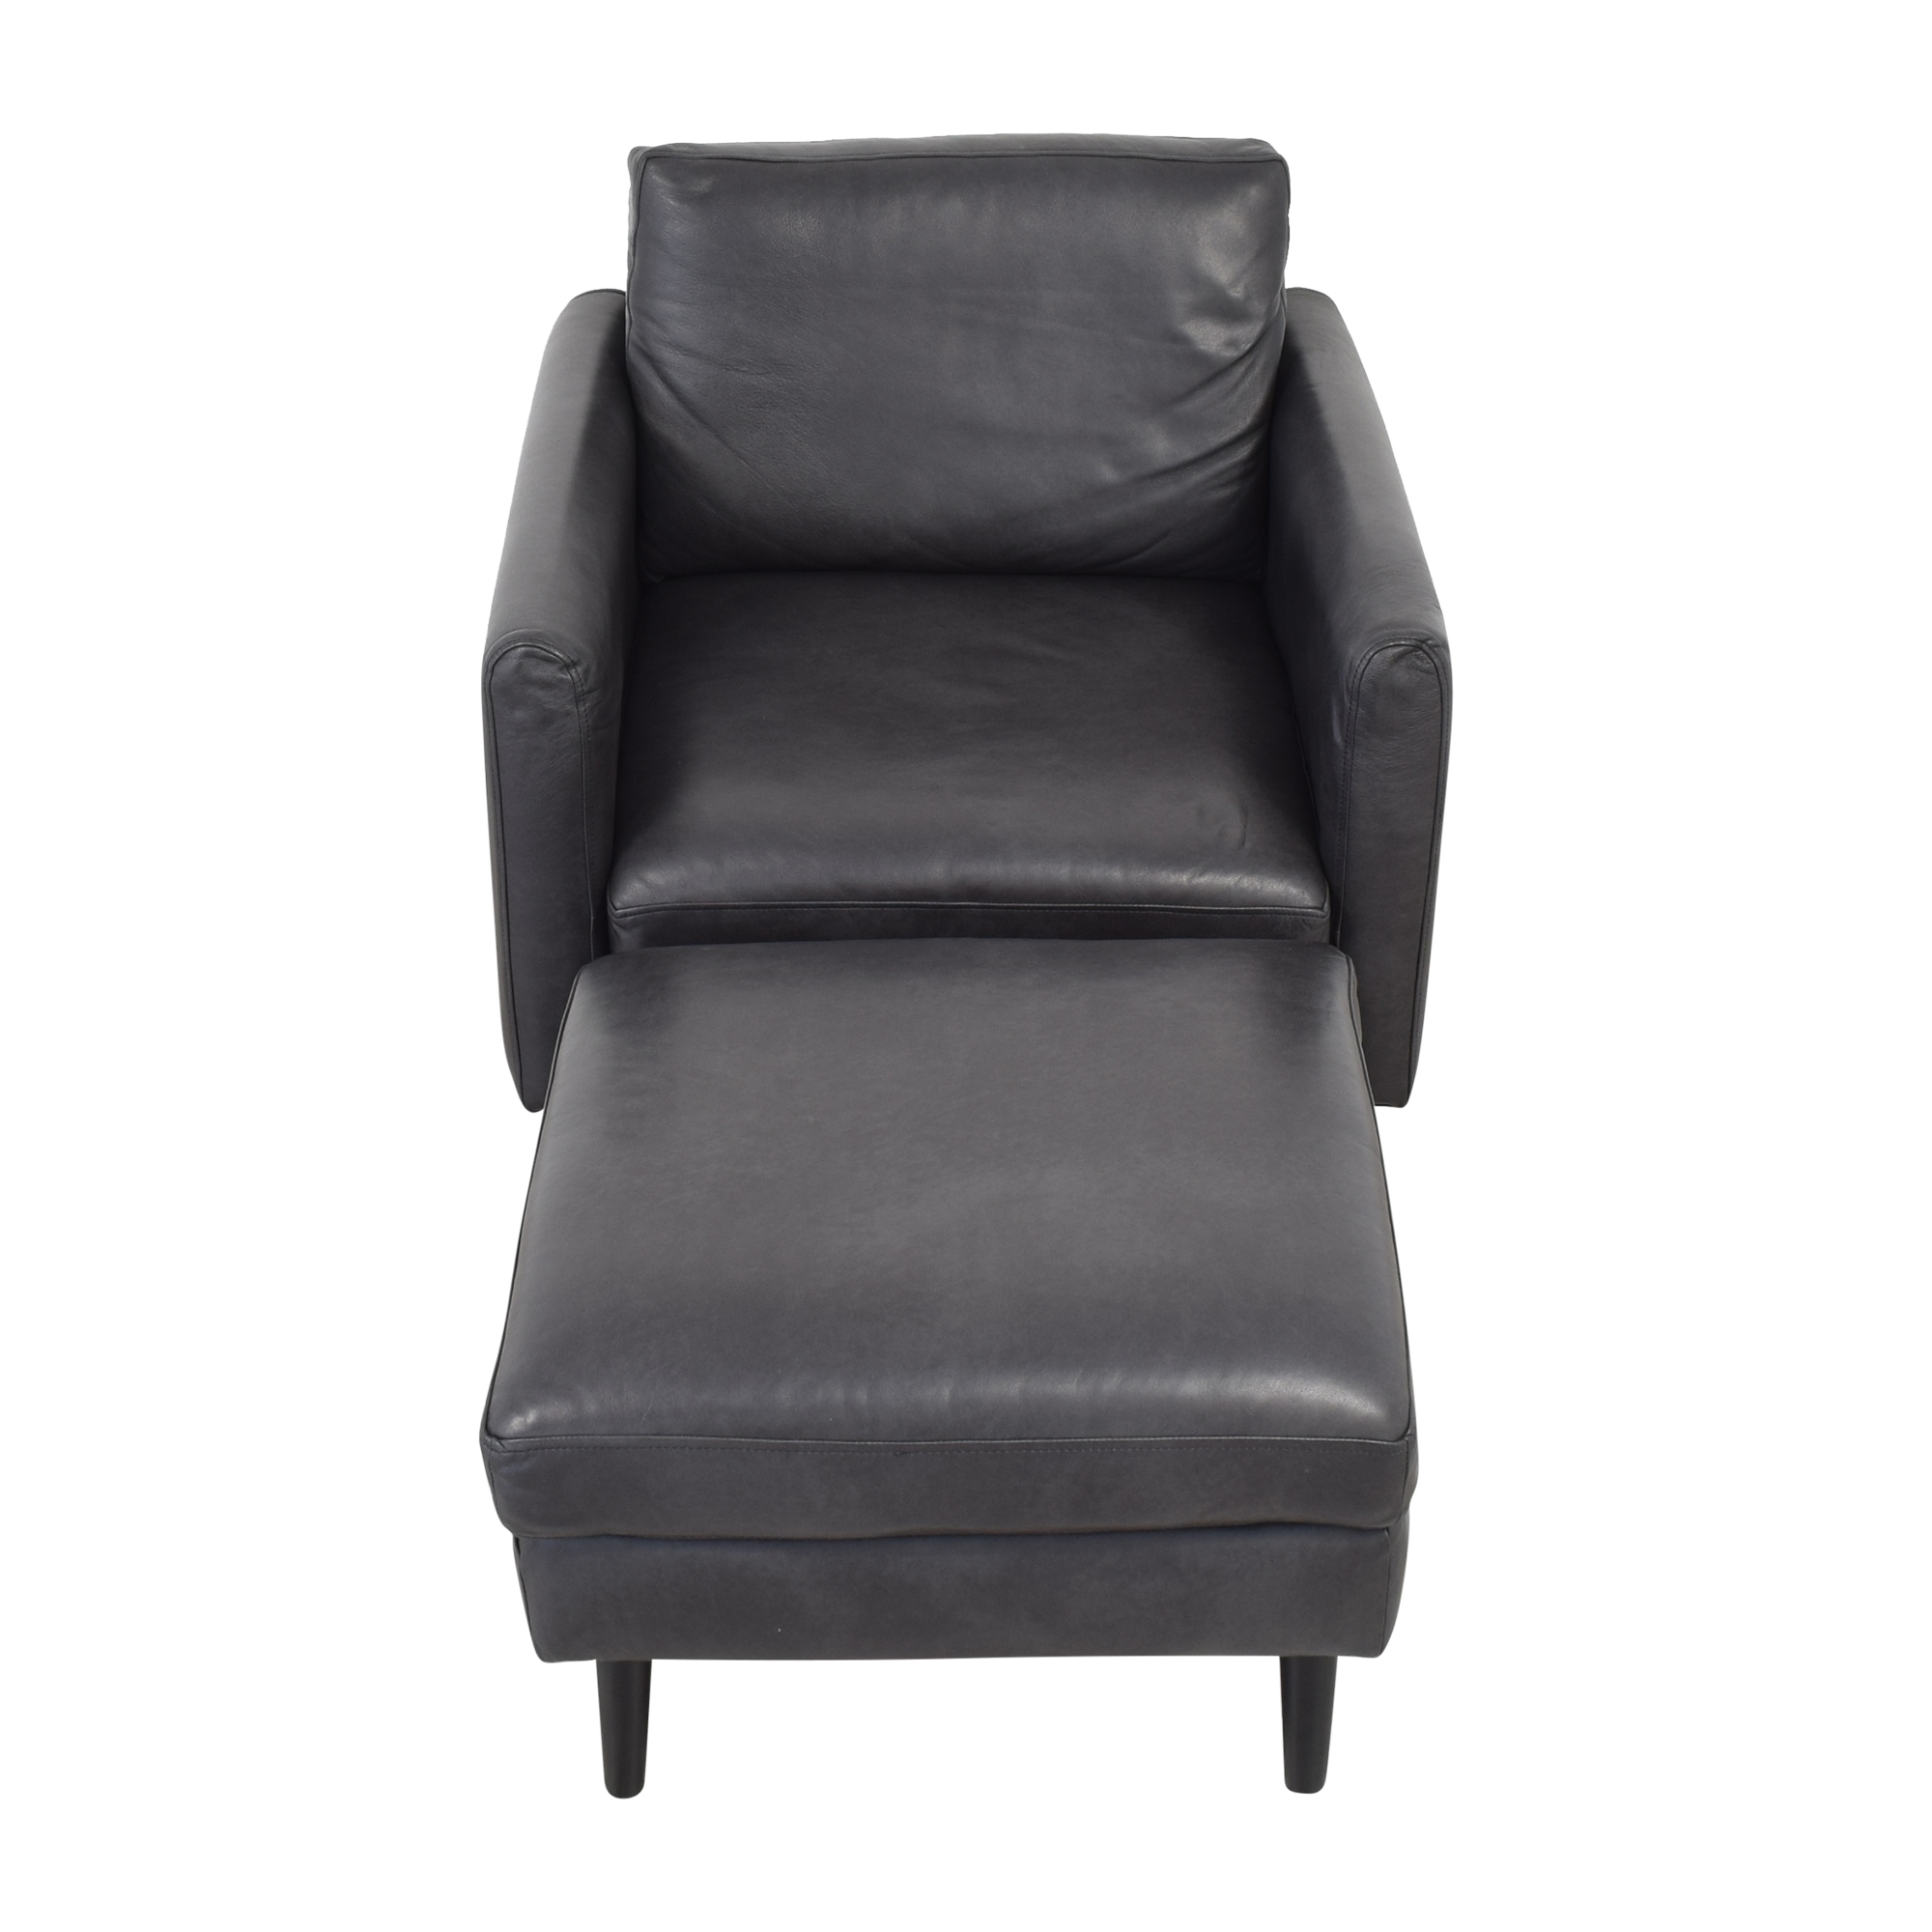 Burrow Burrow Arch Nomad Club Chair with Ottoman price